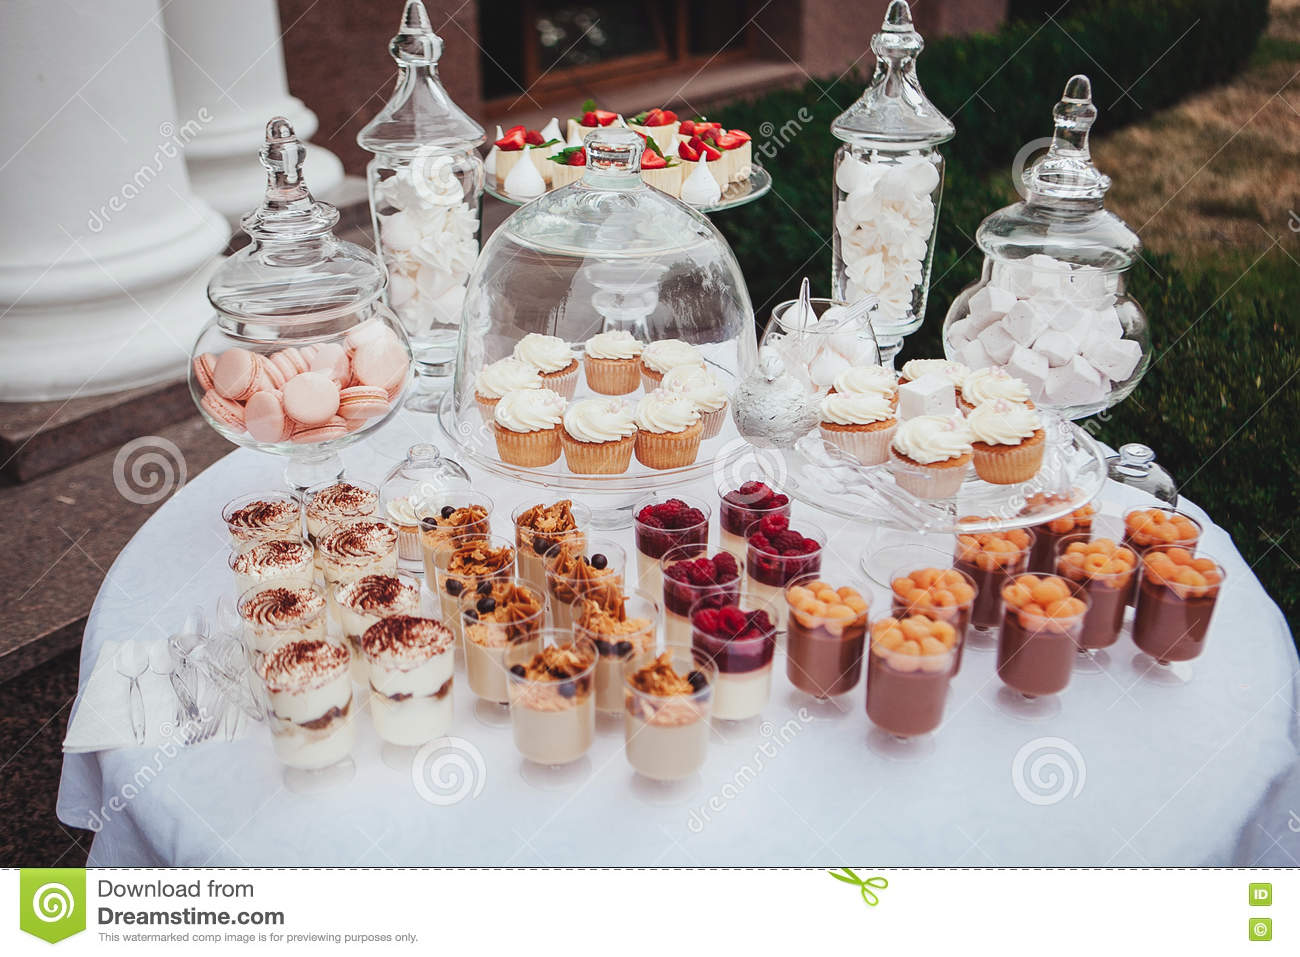 Delicious Wedding Reception Candy Bar Dessert Table Swetts Cupcakes Stock Photo